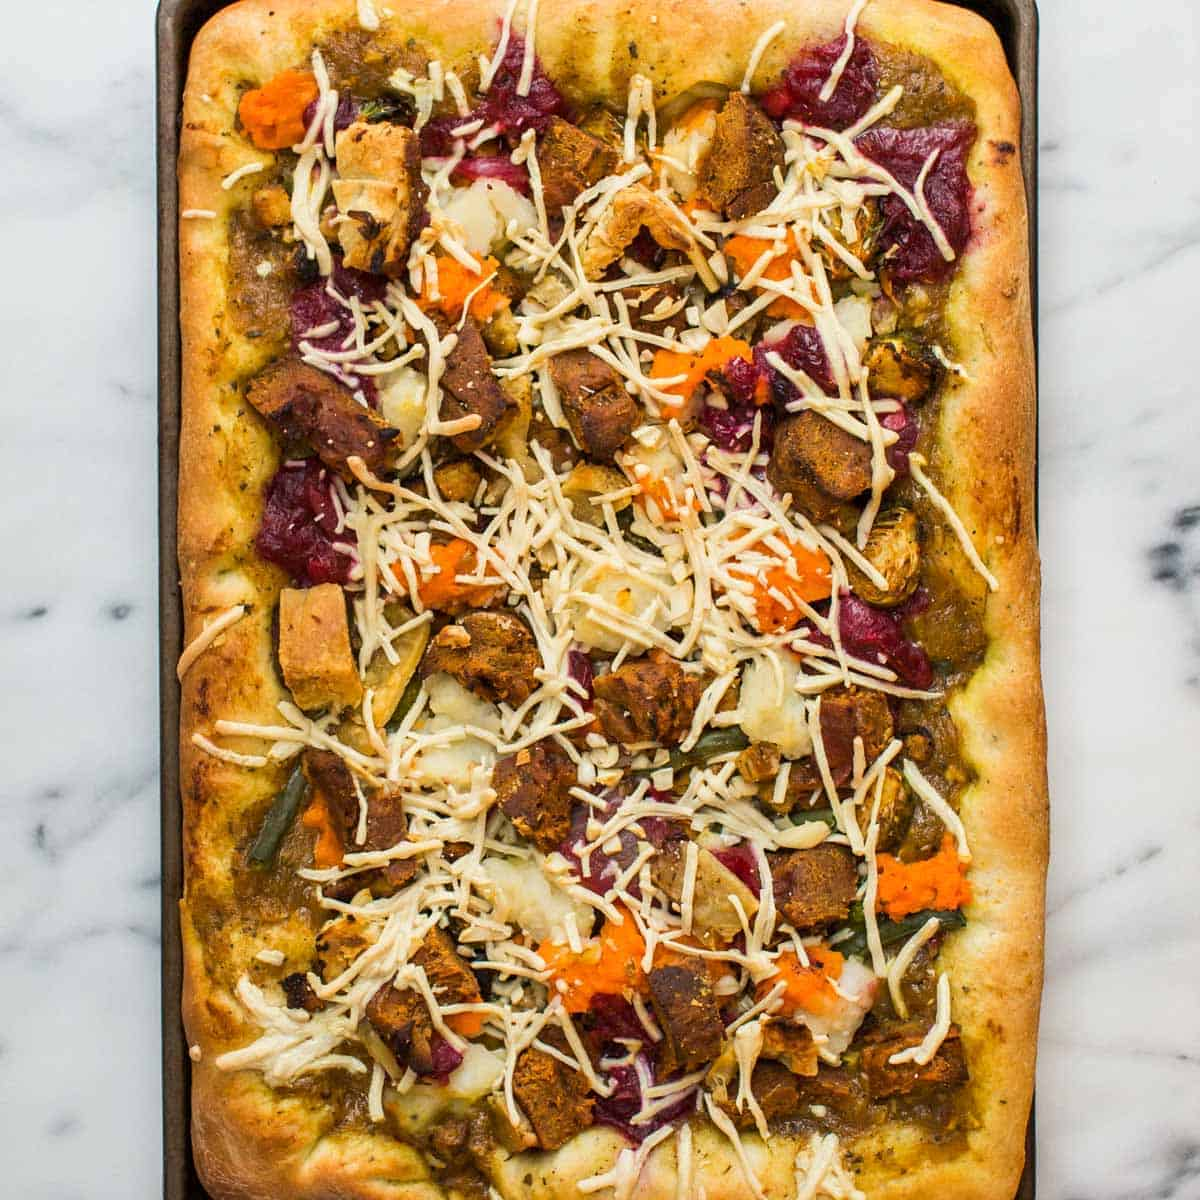 Thanksgiving leftovers pizza on marble counter